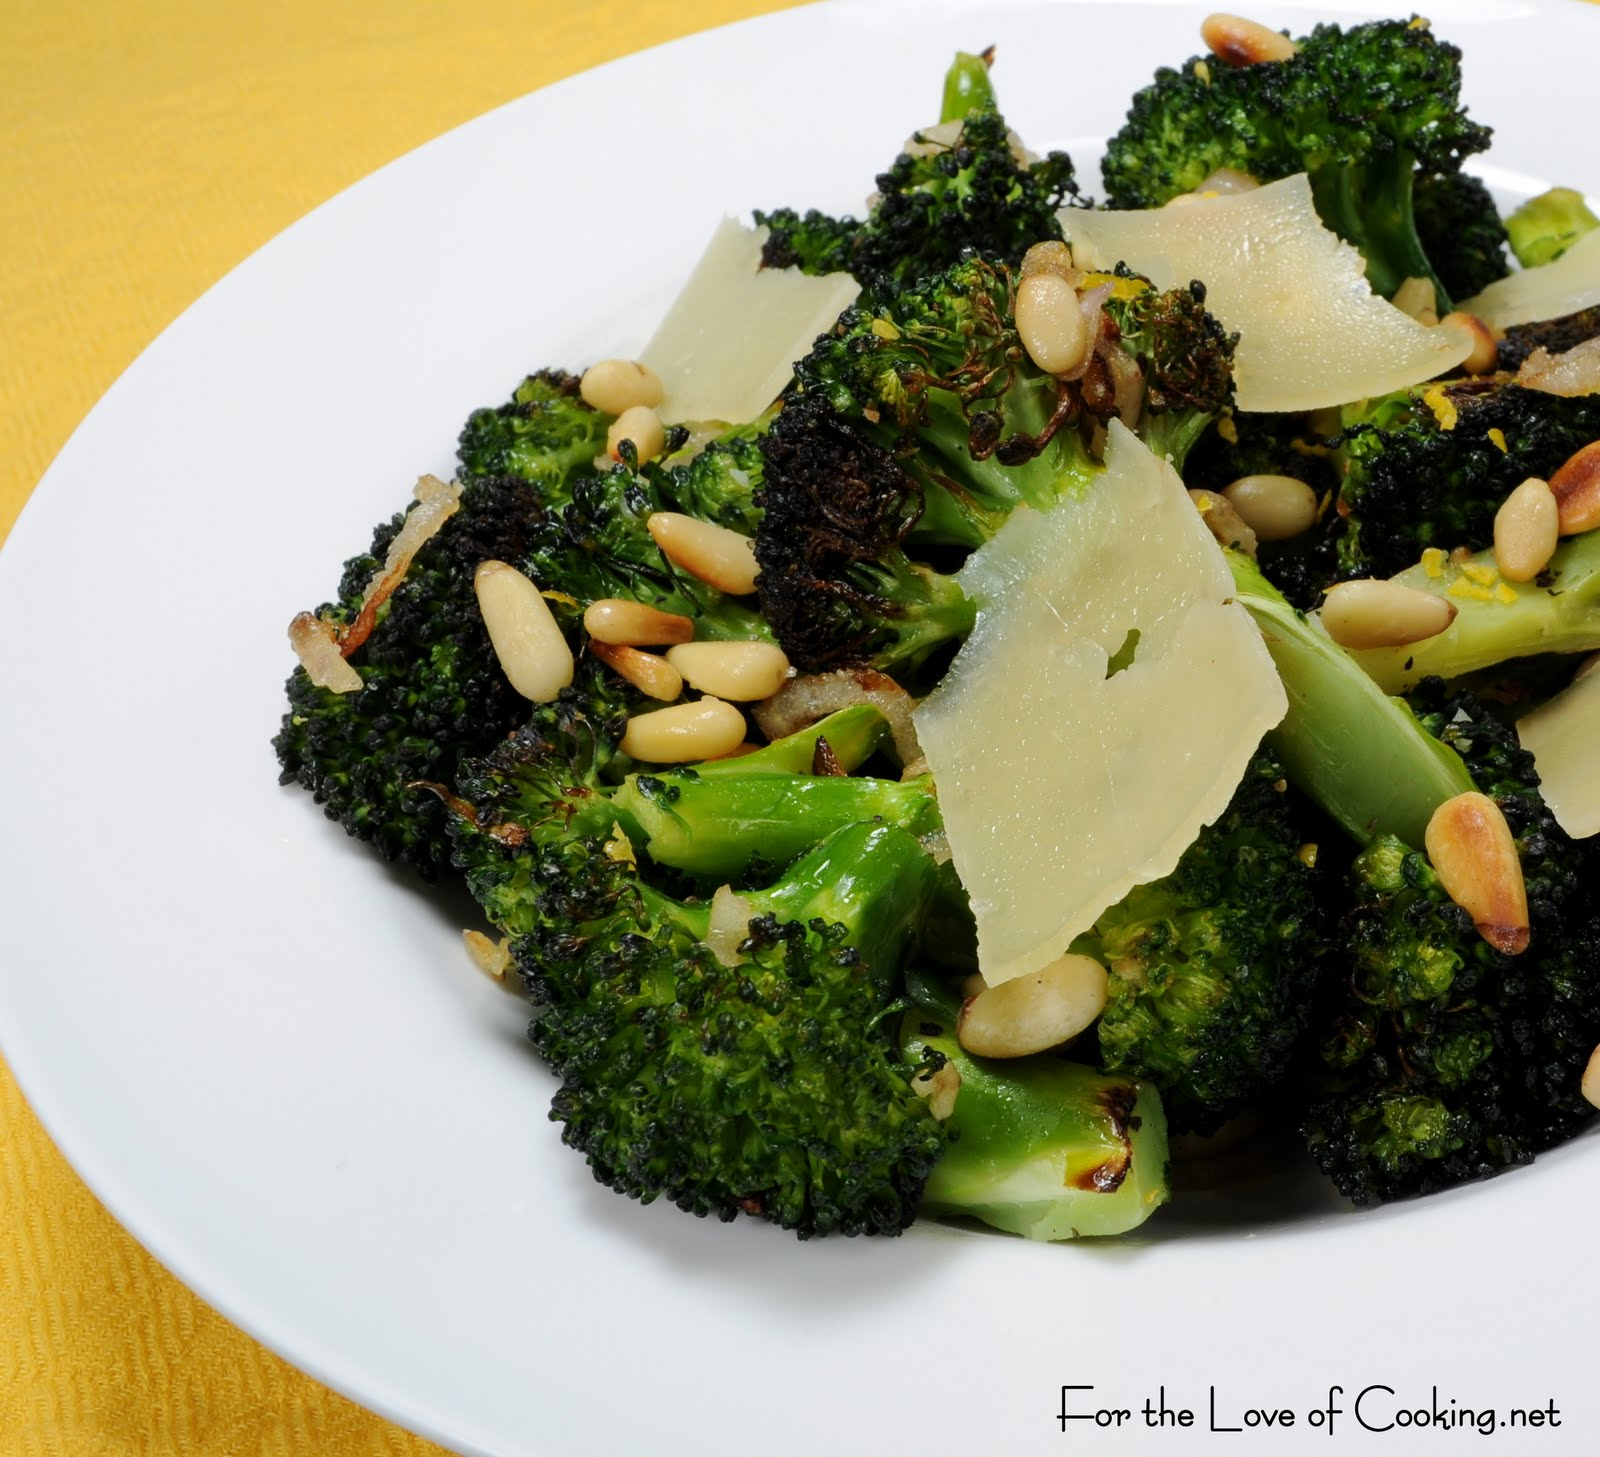 Roasted Broccoli with Shallots, Pine Nuts and Parmesan | For the Love ...